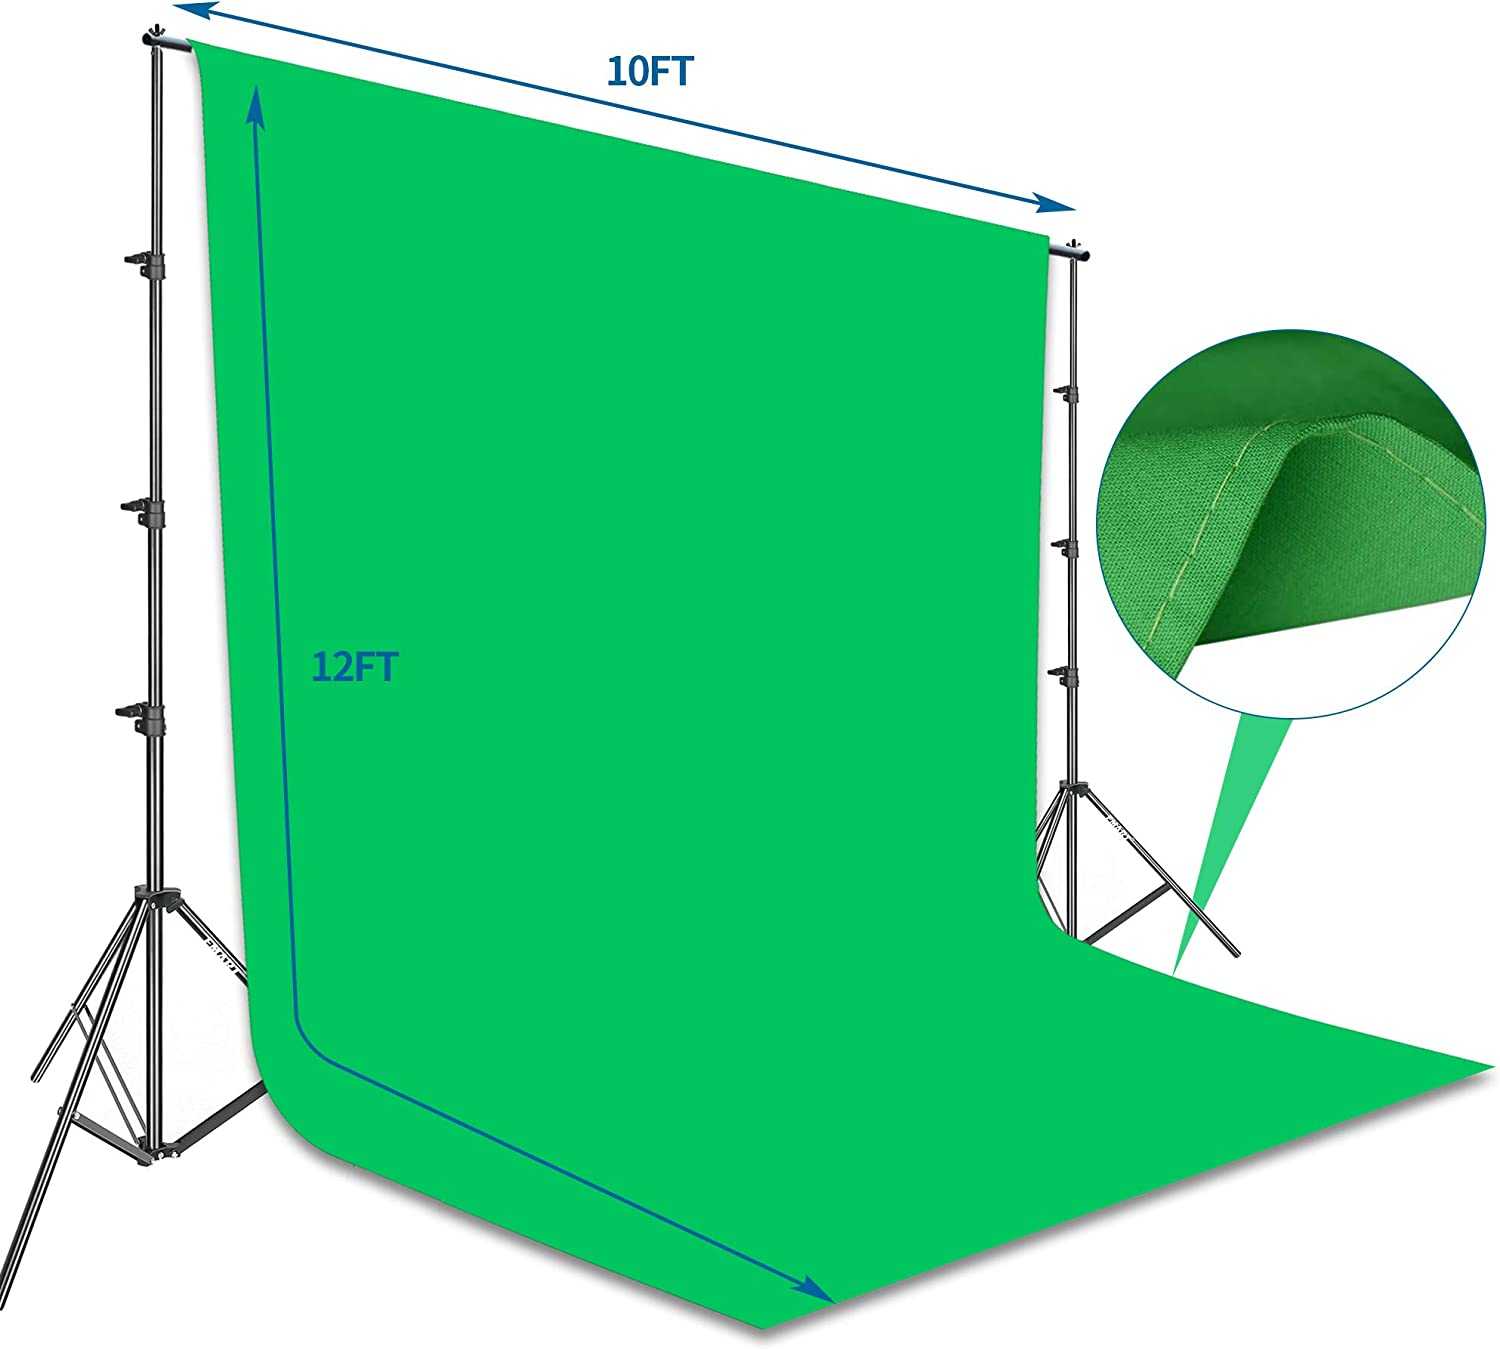 Photography Background Support System with 10 x12ft 100/% Cotton Muslin Chromakey Backdrop Emart Photo Video Studio 8.5 x 10ft Green Screen Backdrop Stand Kit